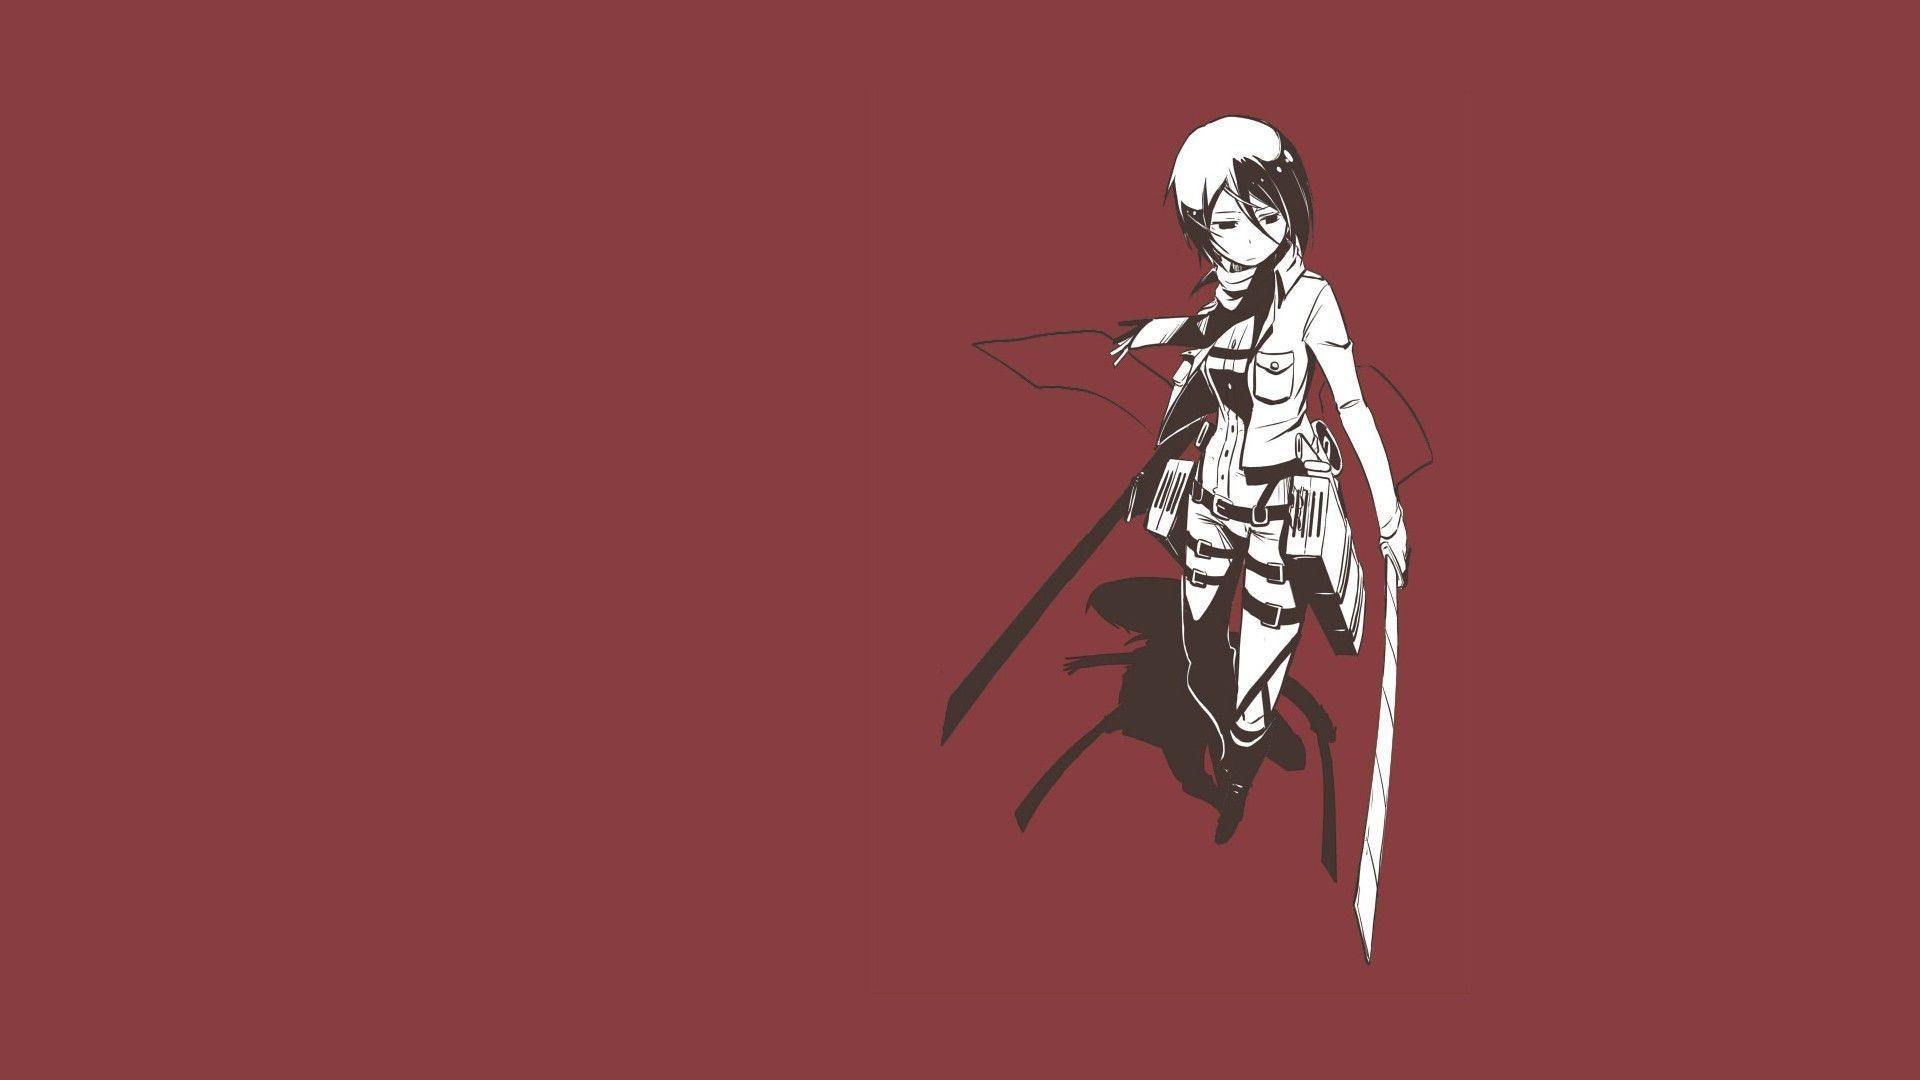 Posted in anime wallpaper brand wallpaper minimalism wallpapers tv shows wallpaper. Attack On Titan Minimalist PC Wallpapers - Wallpaper Cave